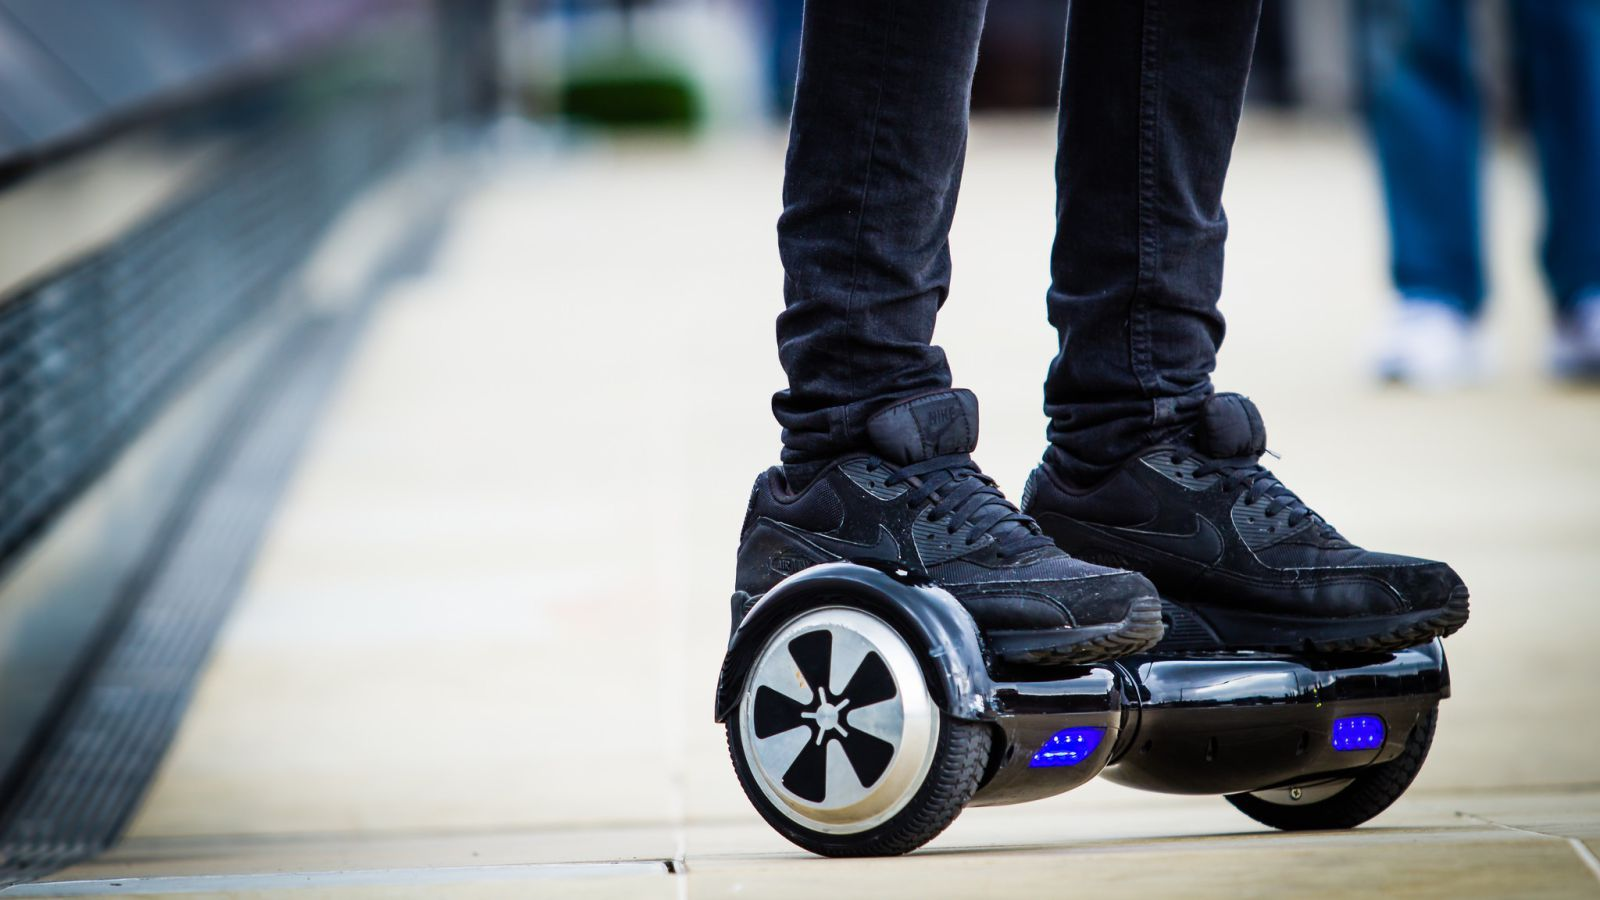 hoverboard-banned- on- plane